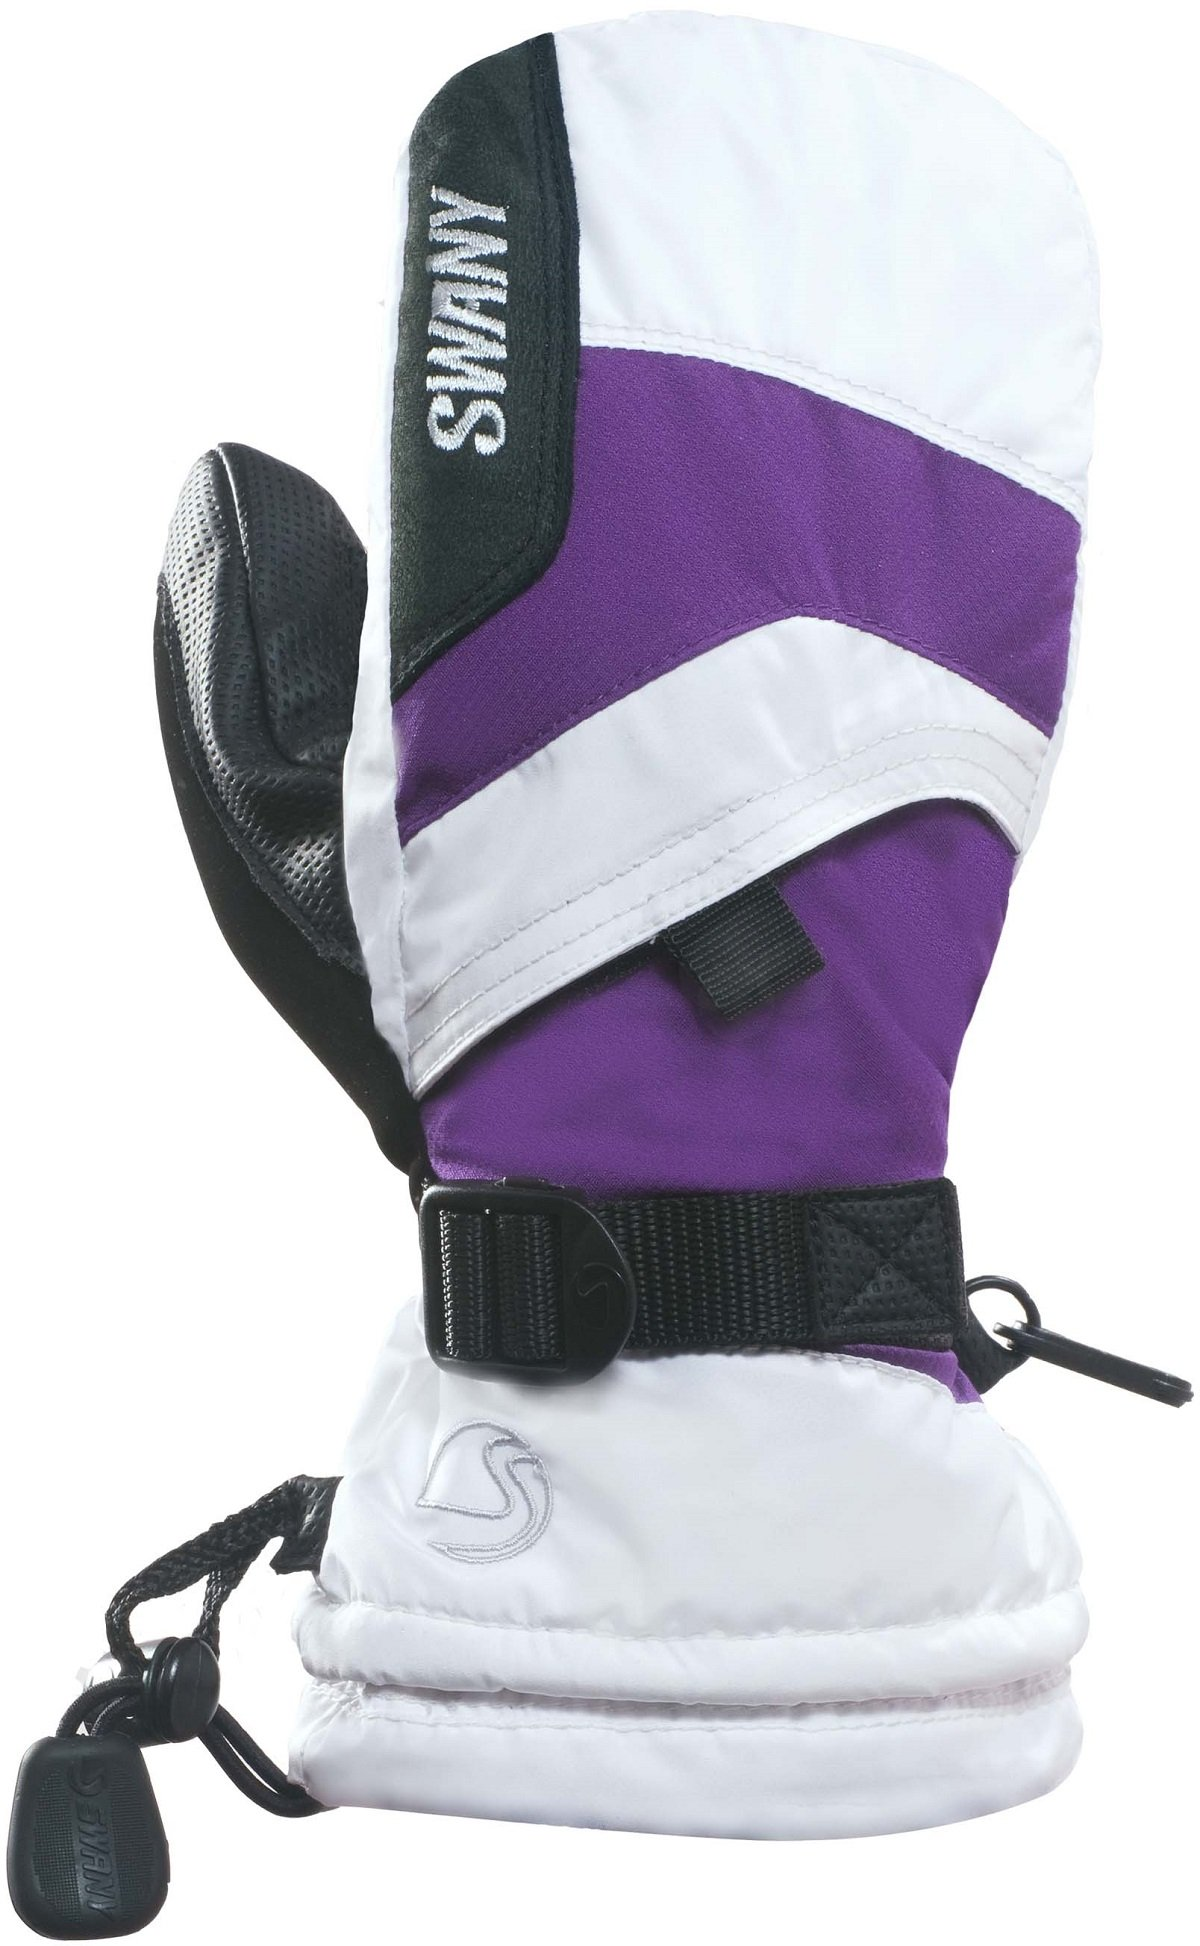 Swany X-Over Jr. Mitt Youth White/Purple XL by SWANY